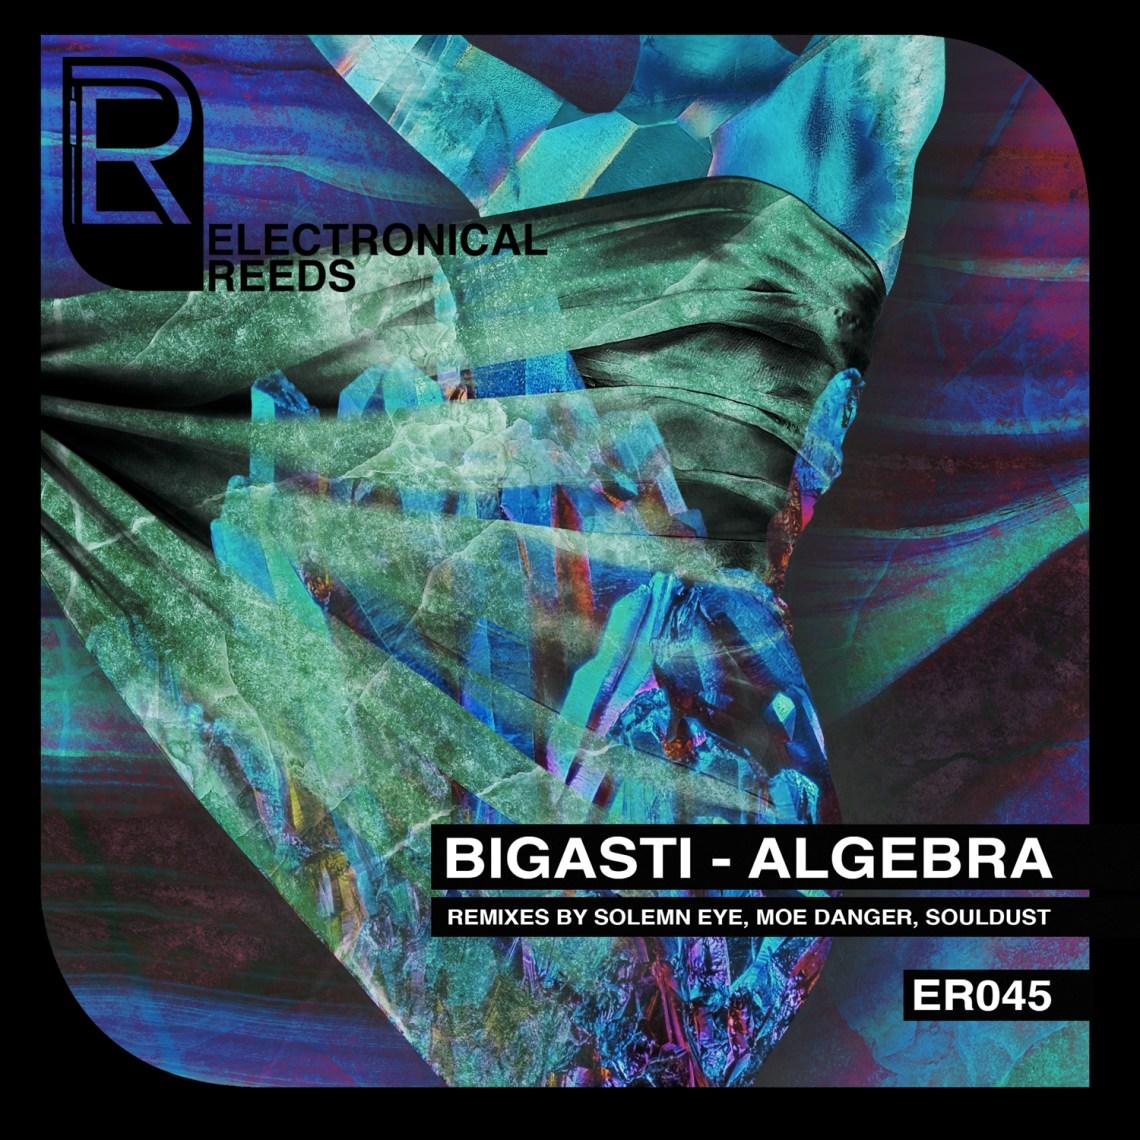 ER045 - Bigasti - Algebra (incl. Solemn Eye, Souldust and Moe Danger Remix)